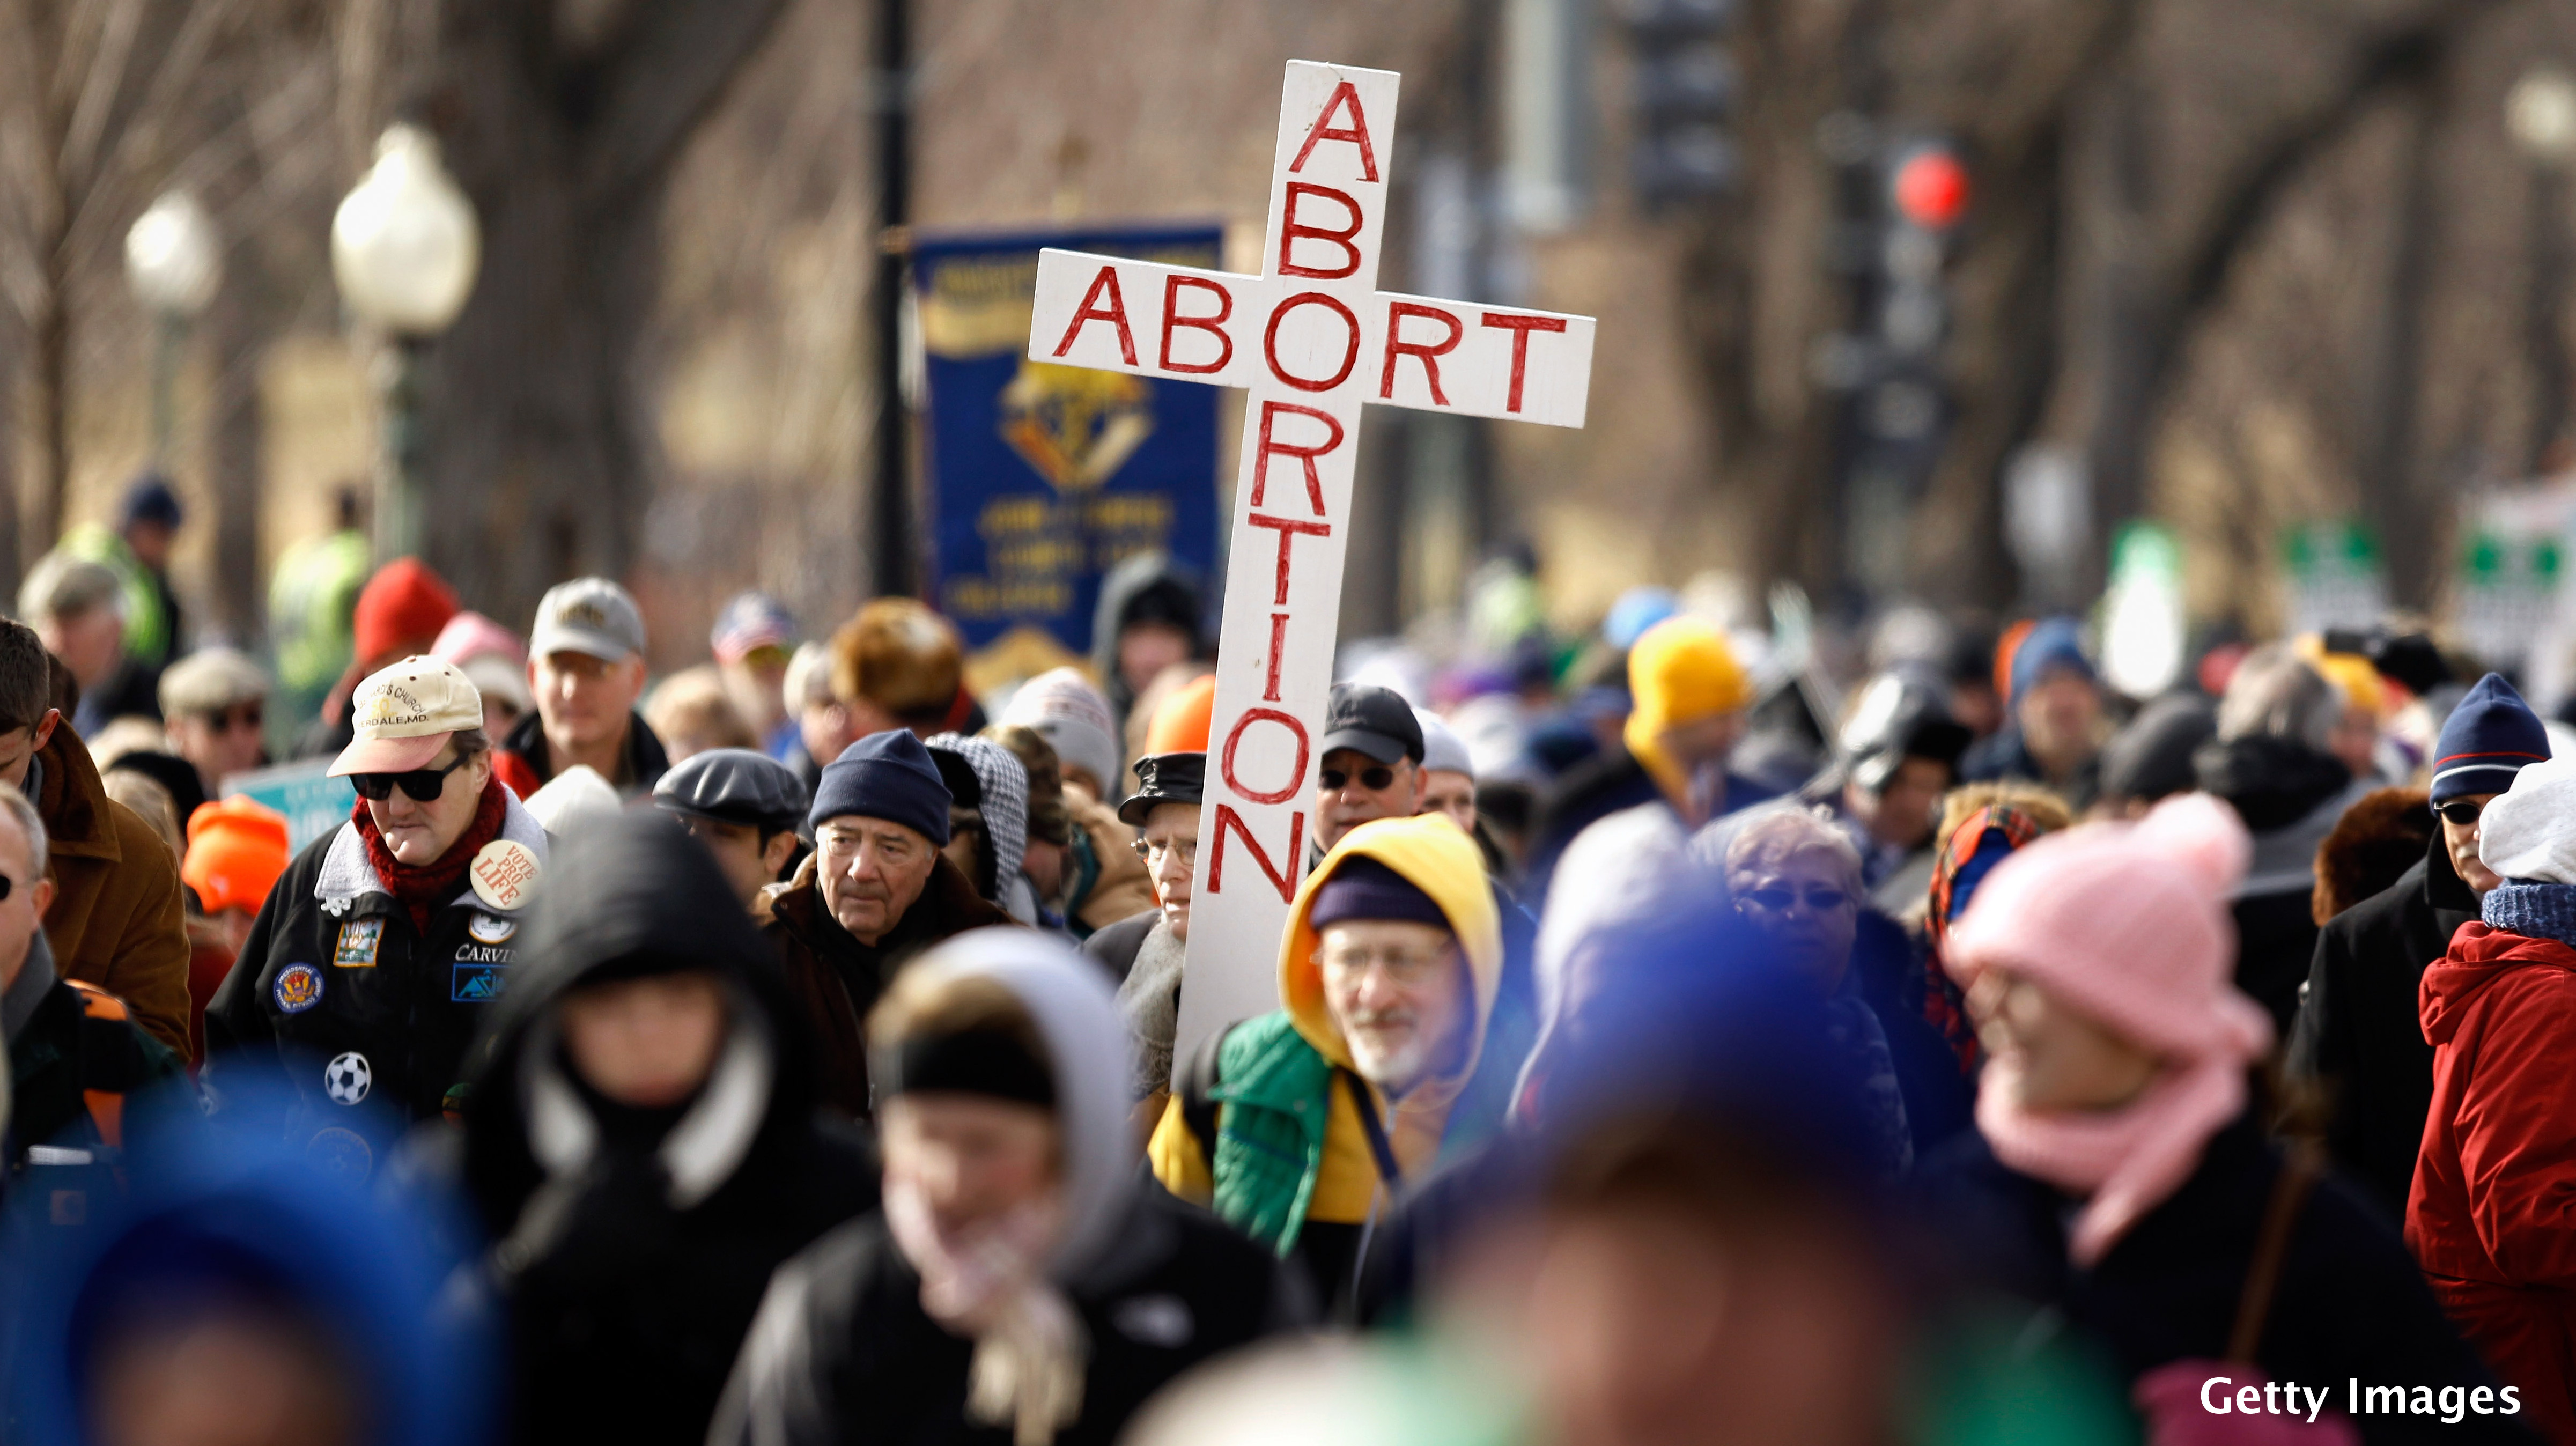 Progressive group starts training pro-abortion rights religious leaders